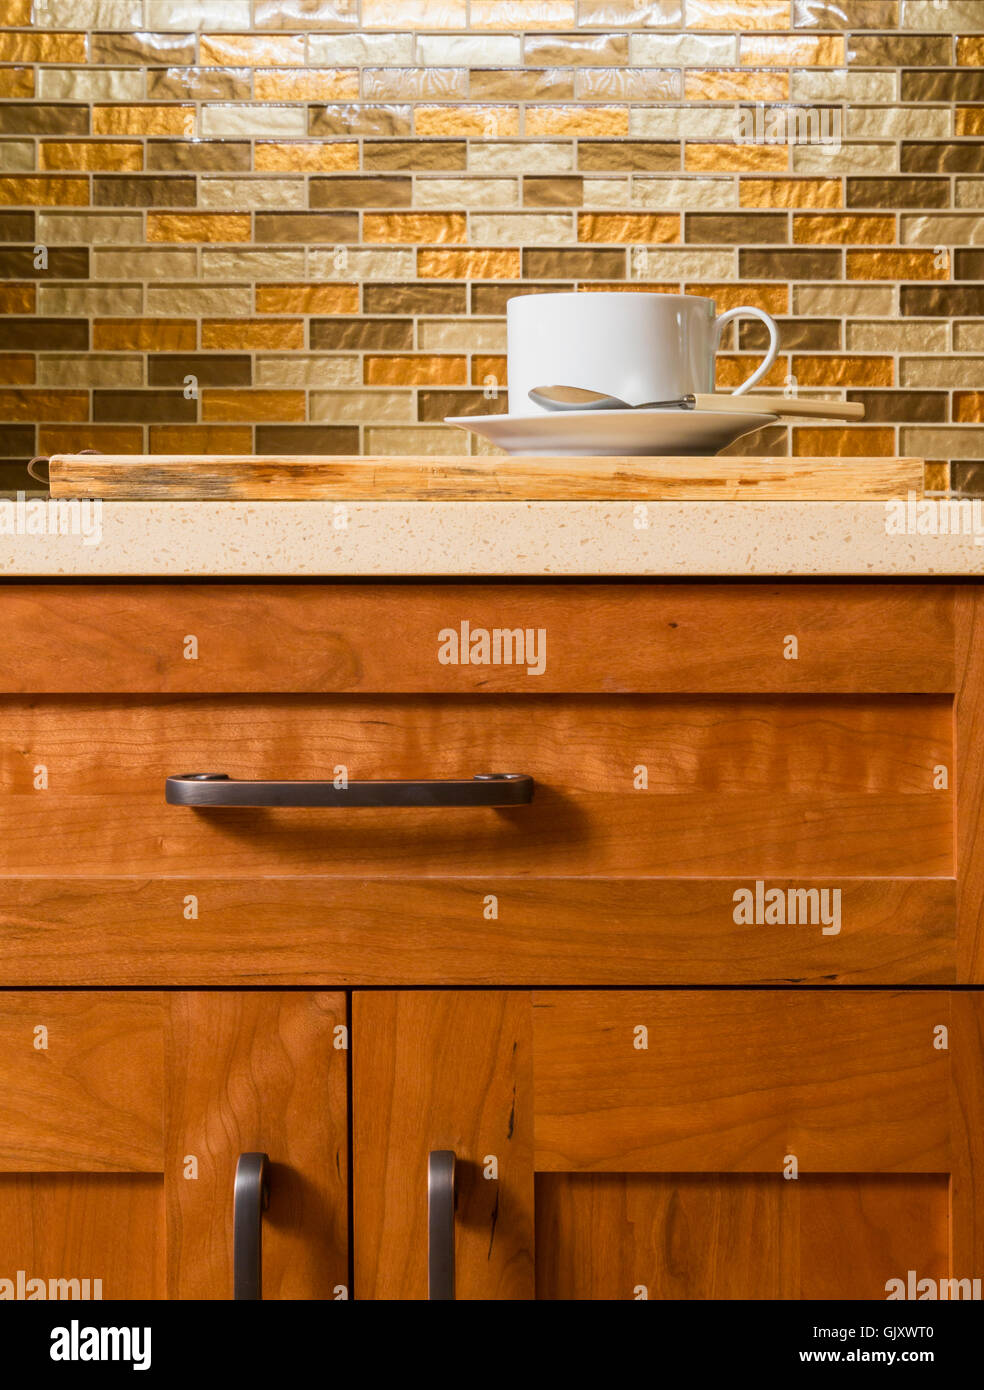 High quality wood cabinets with bronze cabinet hardware & glass tile ...